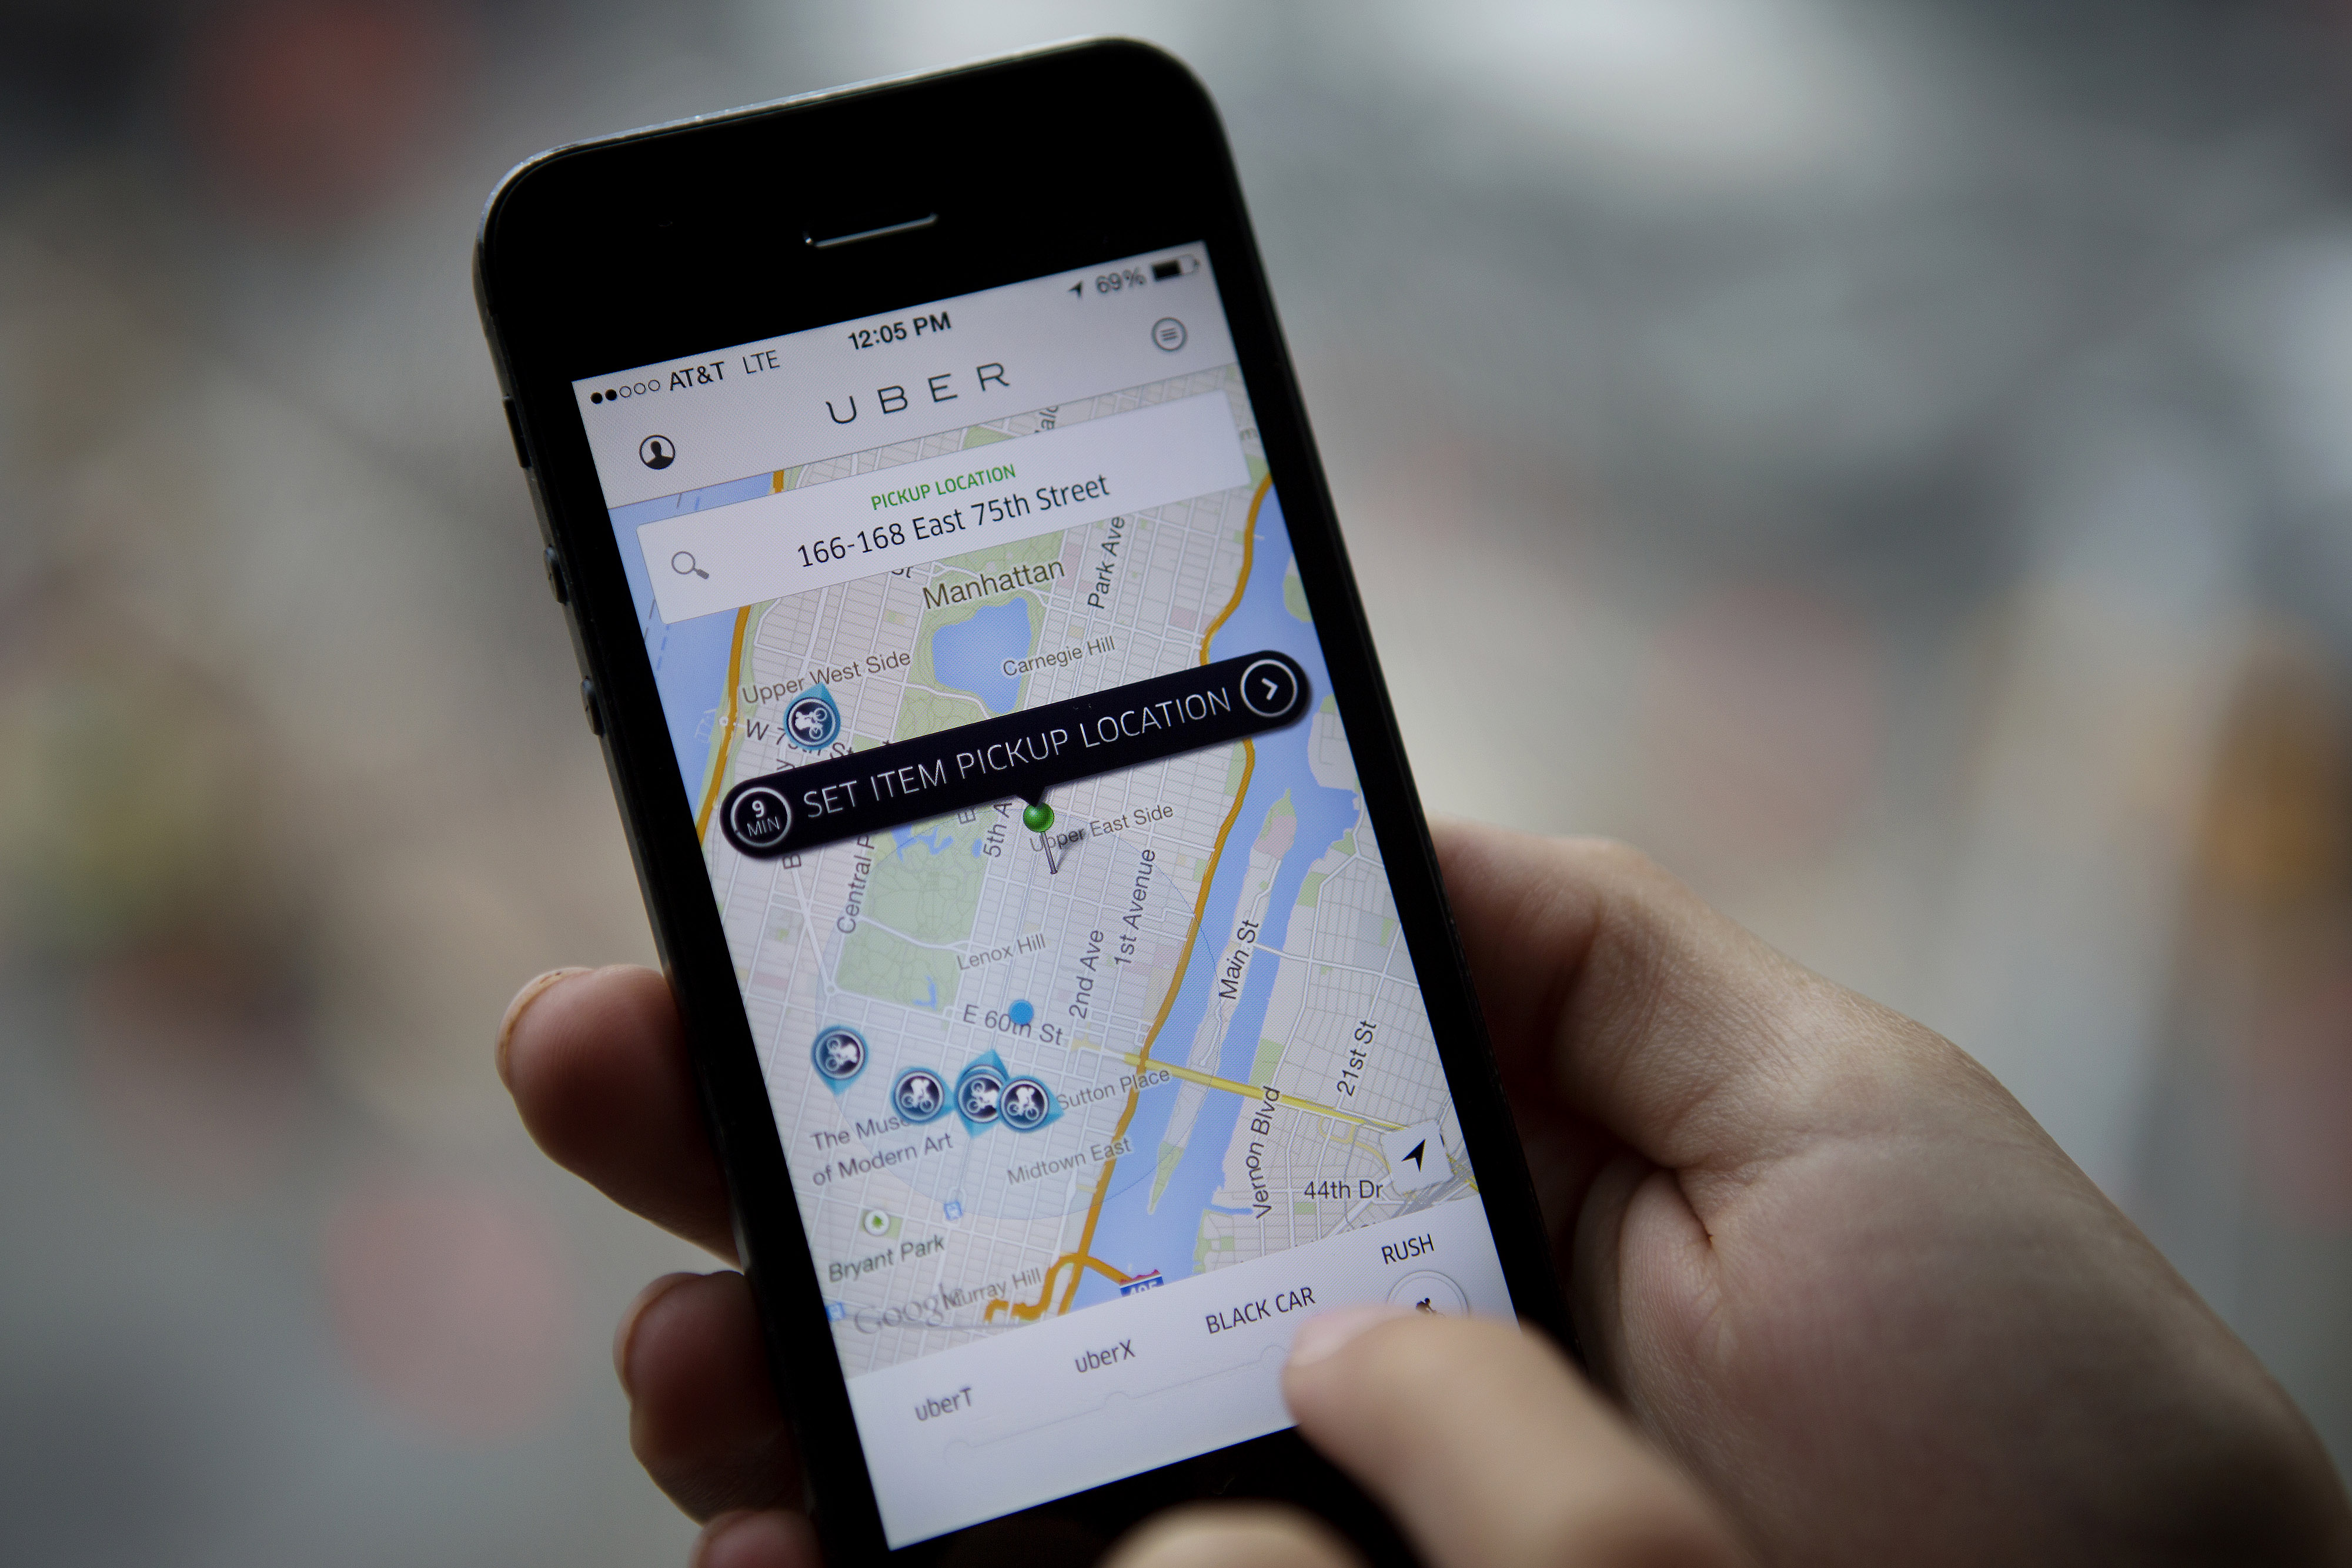 Th Uber Technologies Inc. car service application (app) is demonstrated for a photograph on an Apple Inc. iPhone in New York, U.S., on Wednesday, Aug. 6, 2014.